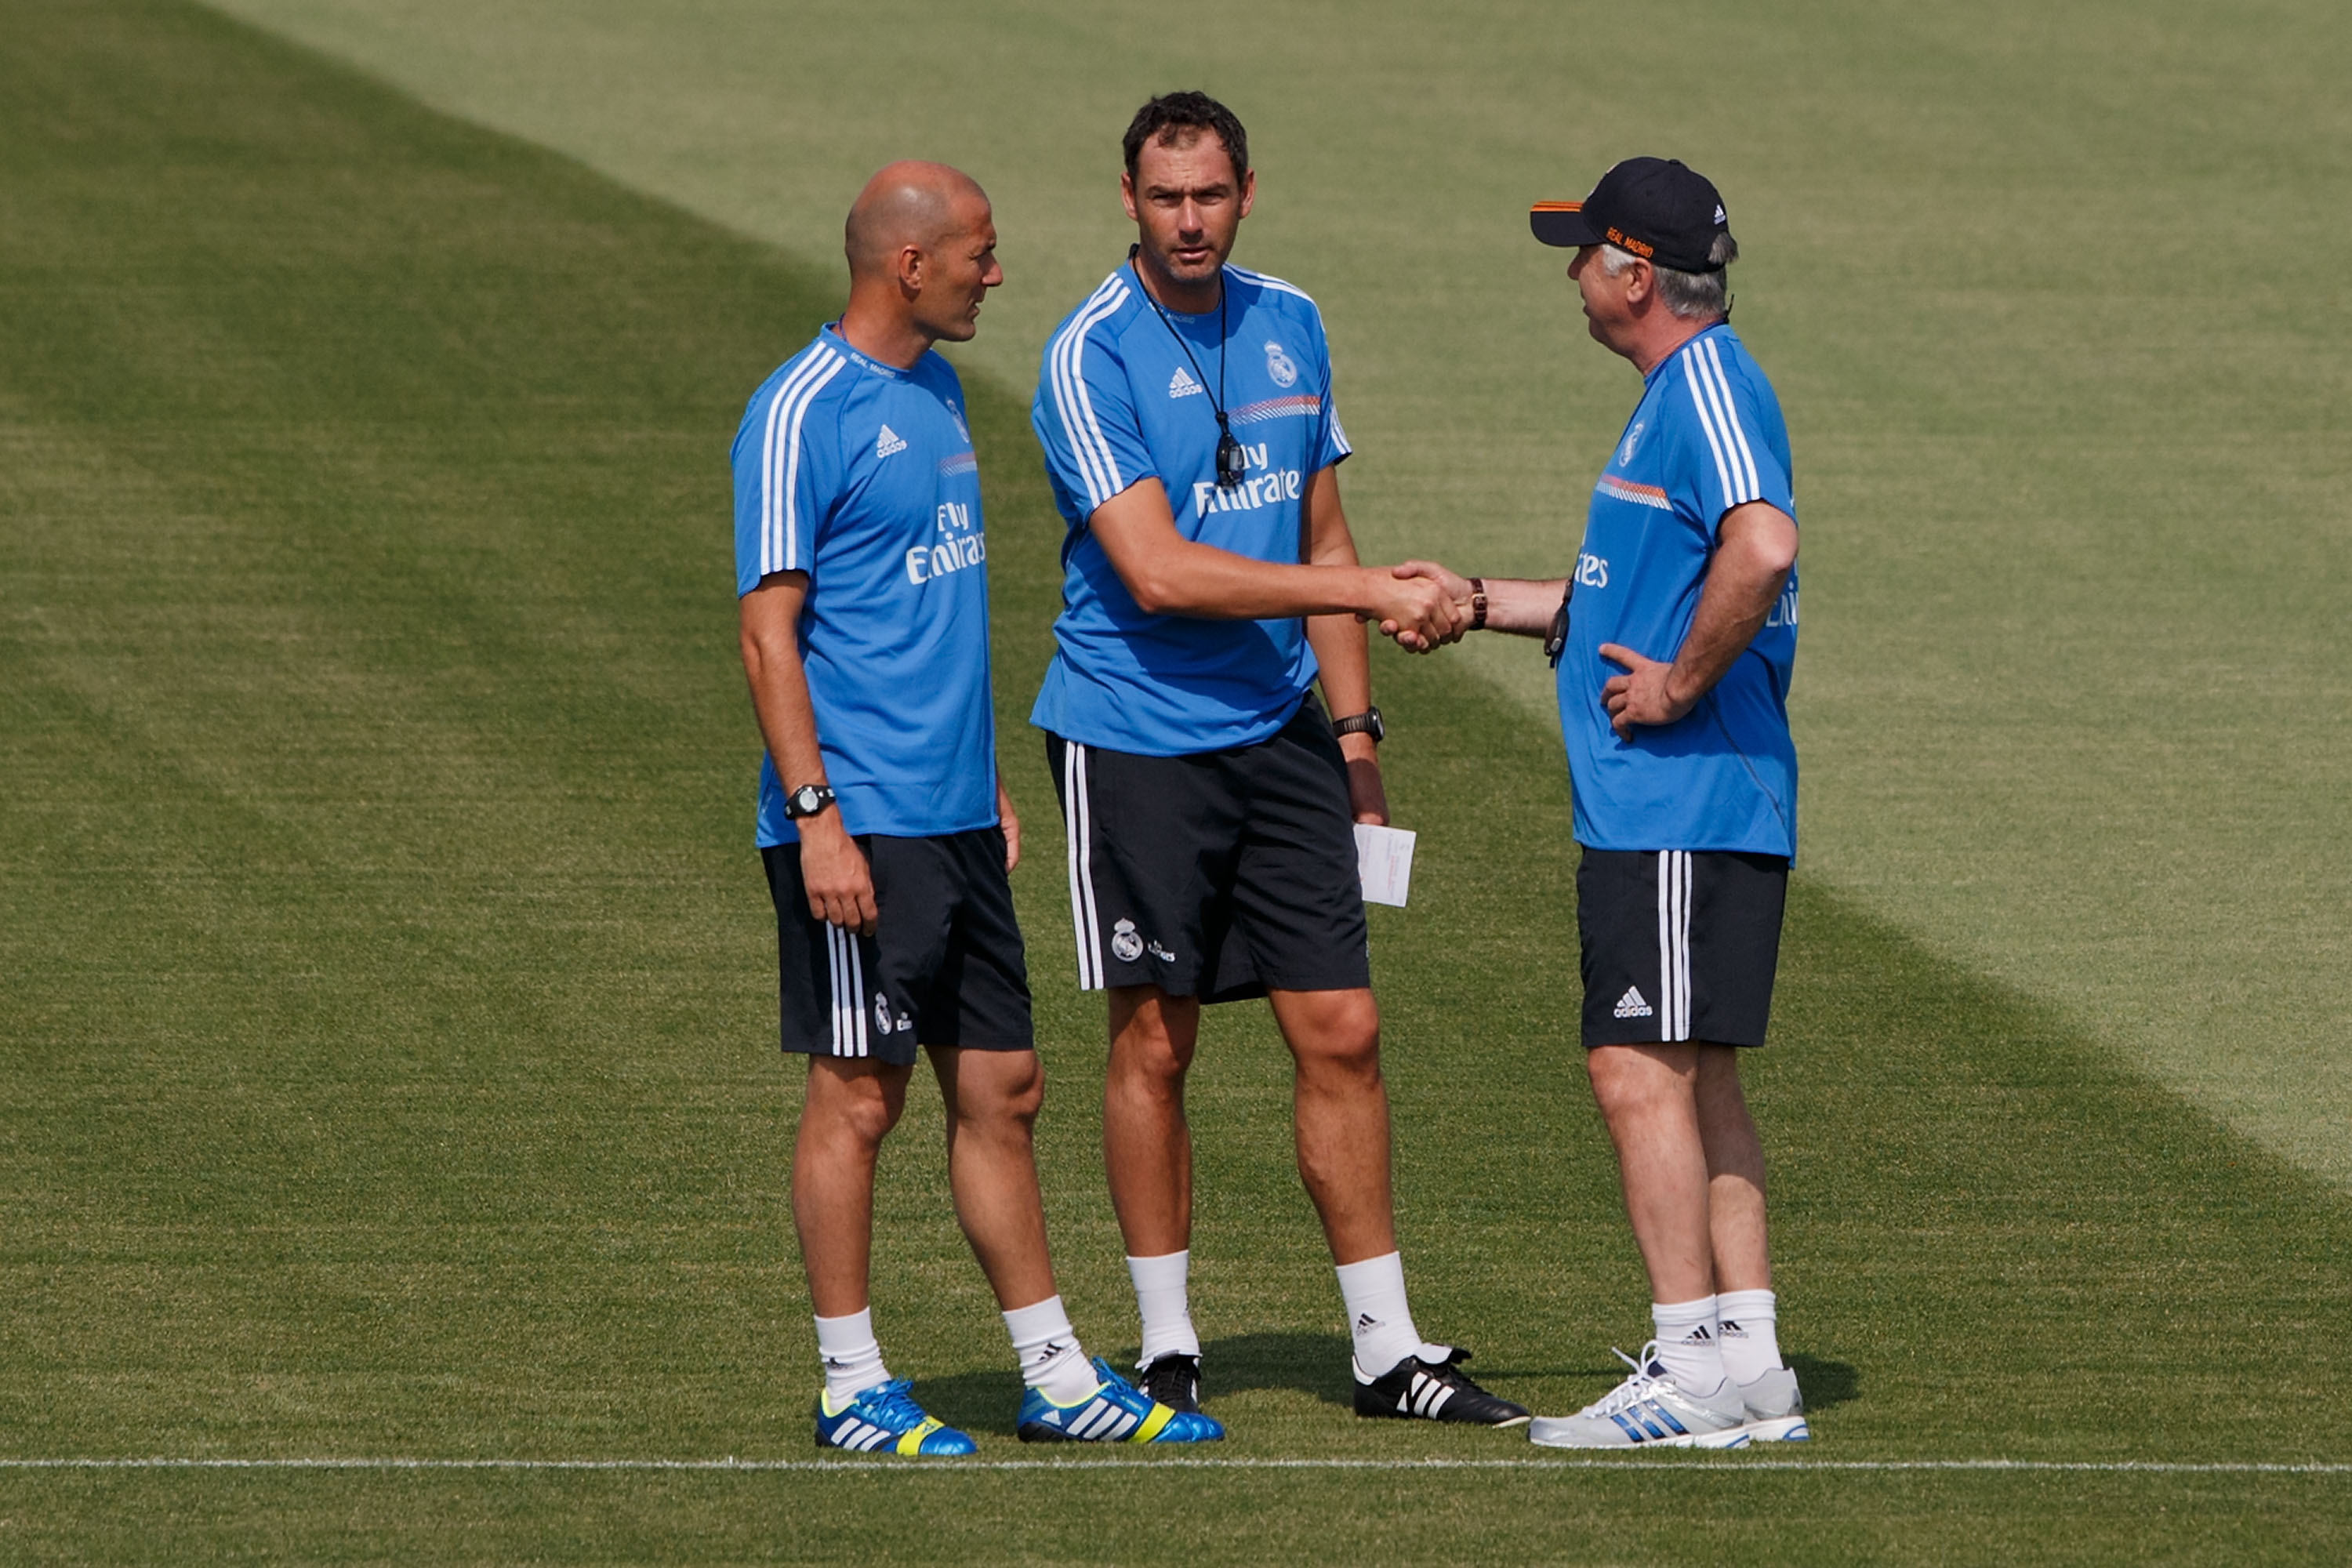 Carlo Ancelotti, Zinedine Zidane and Paul Clement, the Real Madrid coaches